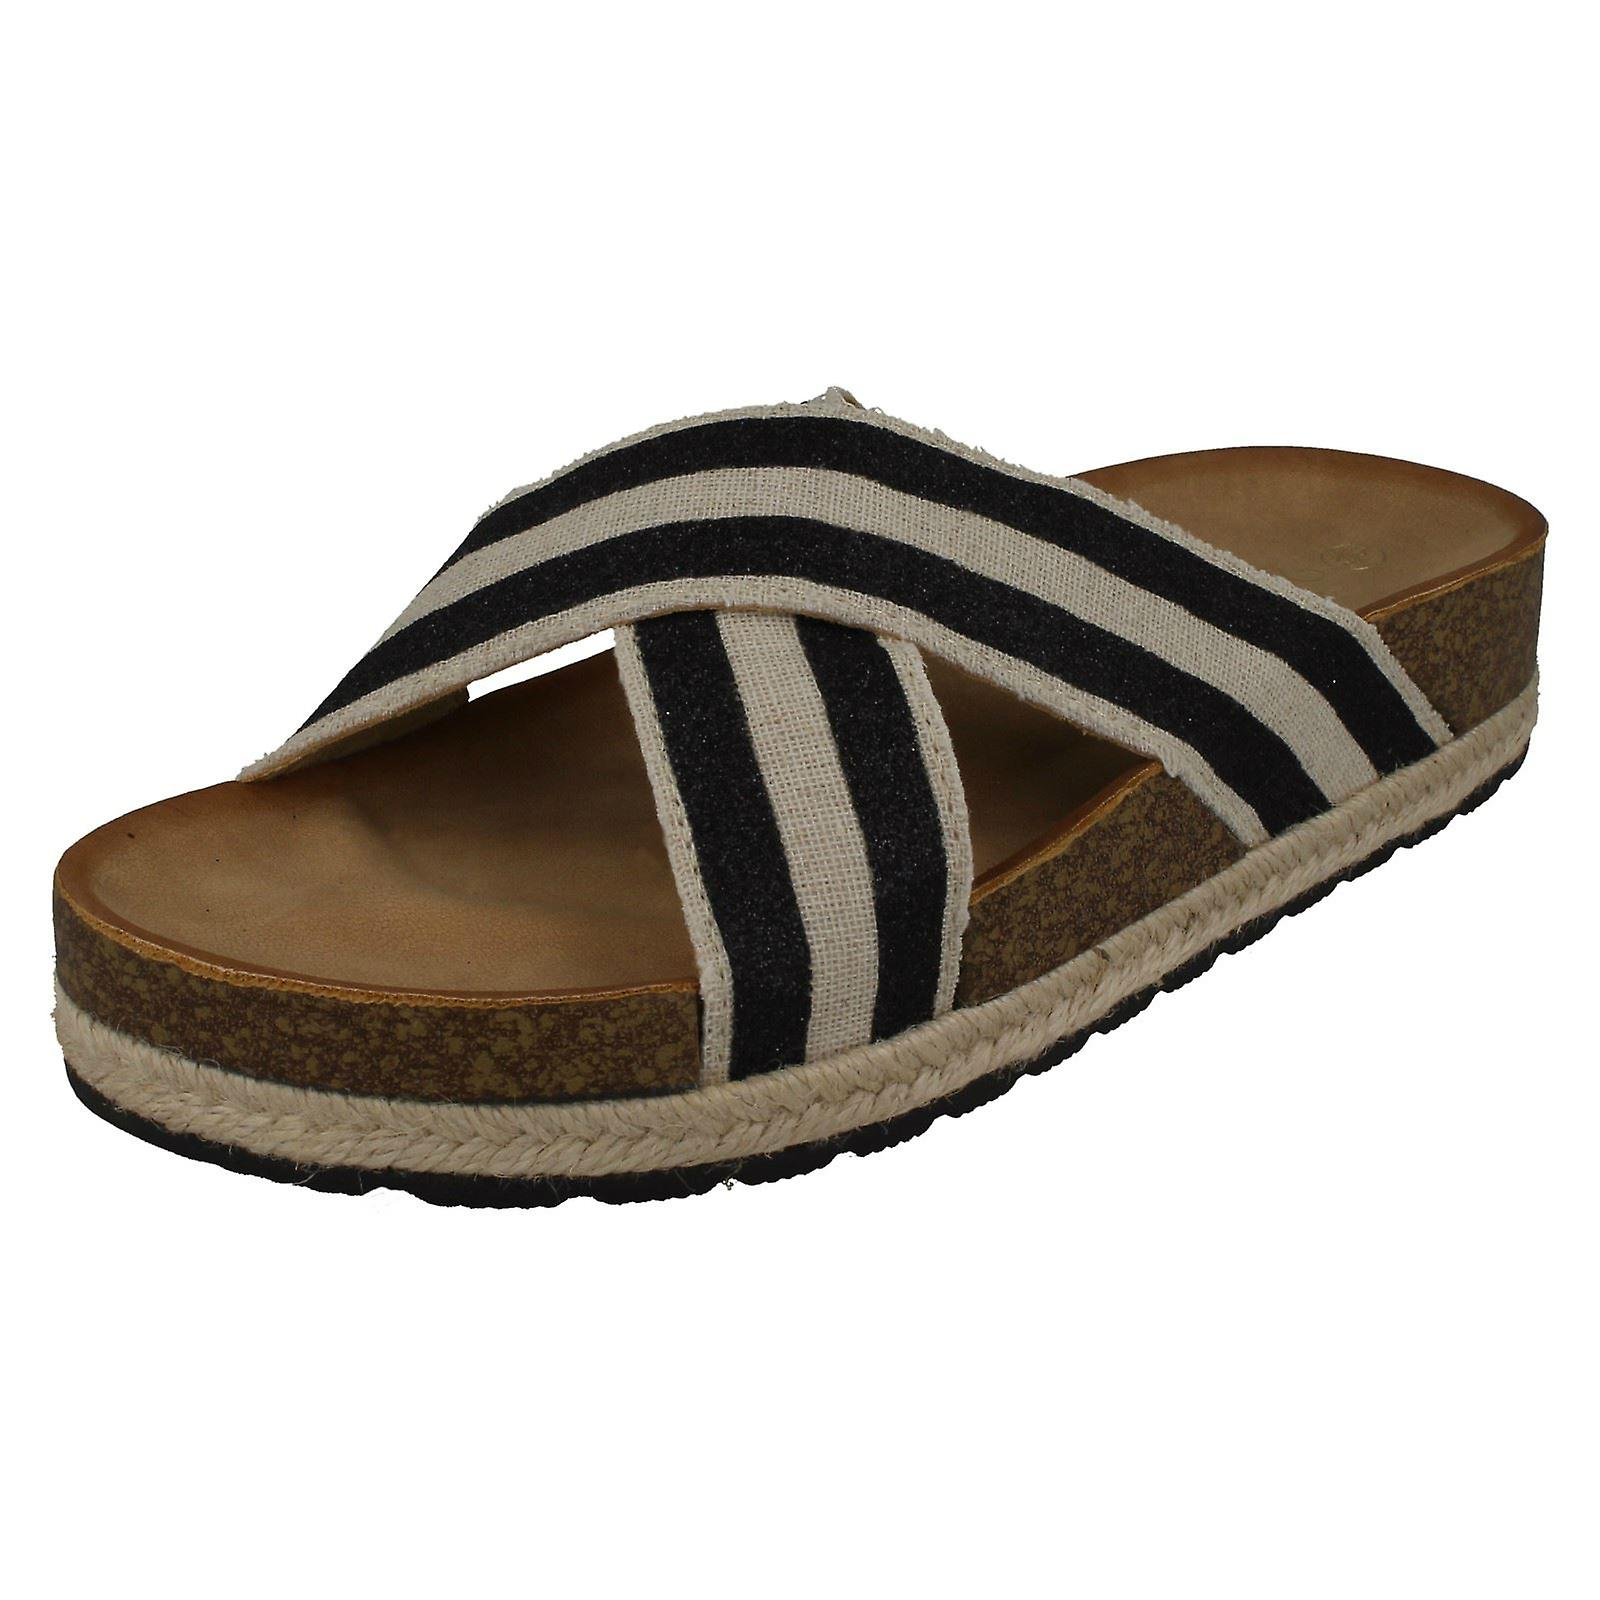 Ladies Savannah Slip On Mules tU5U2